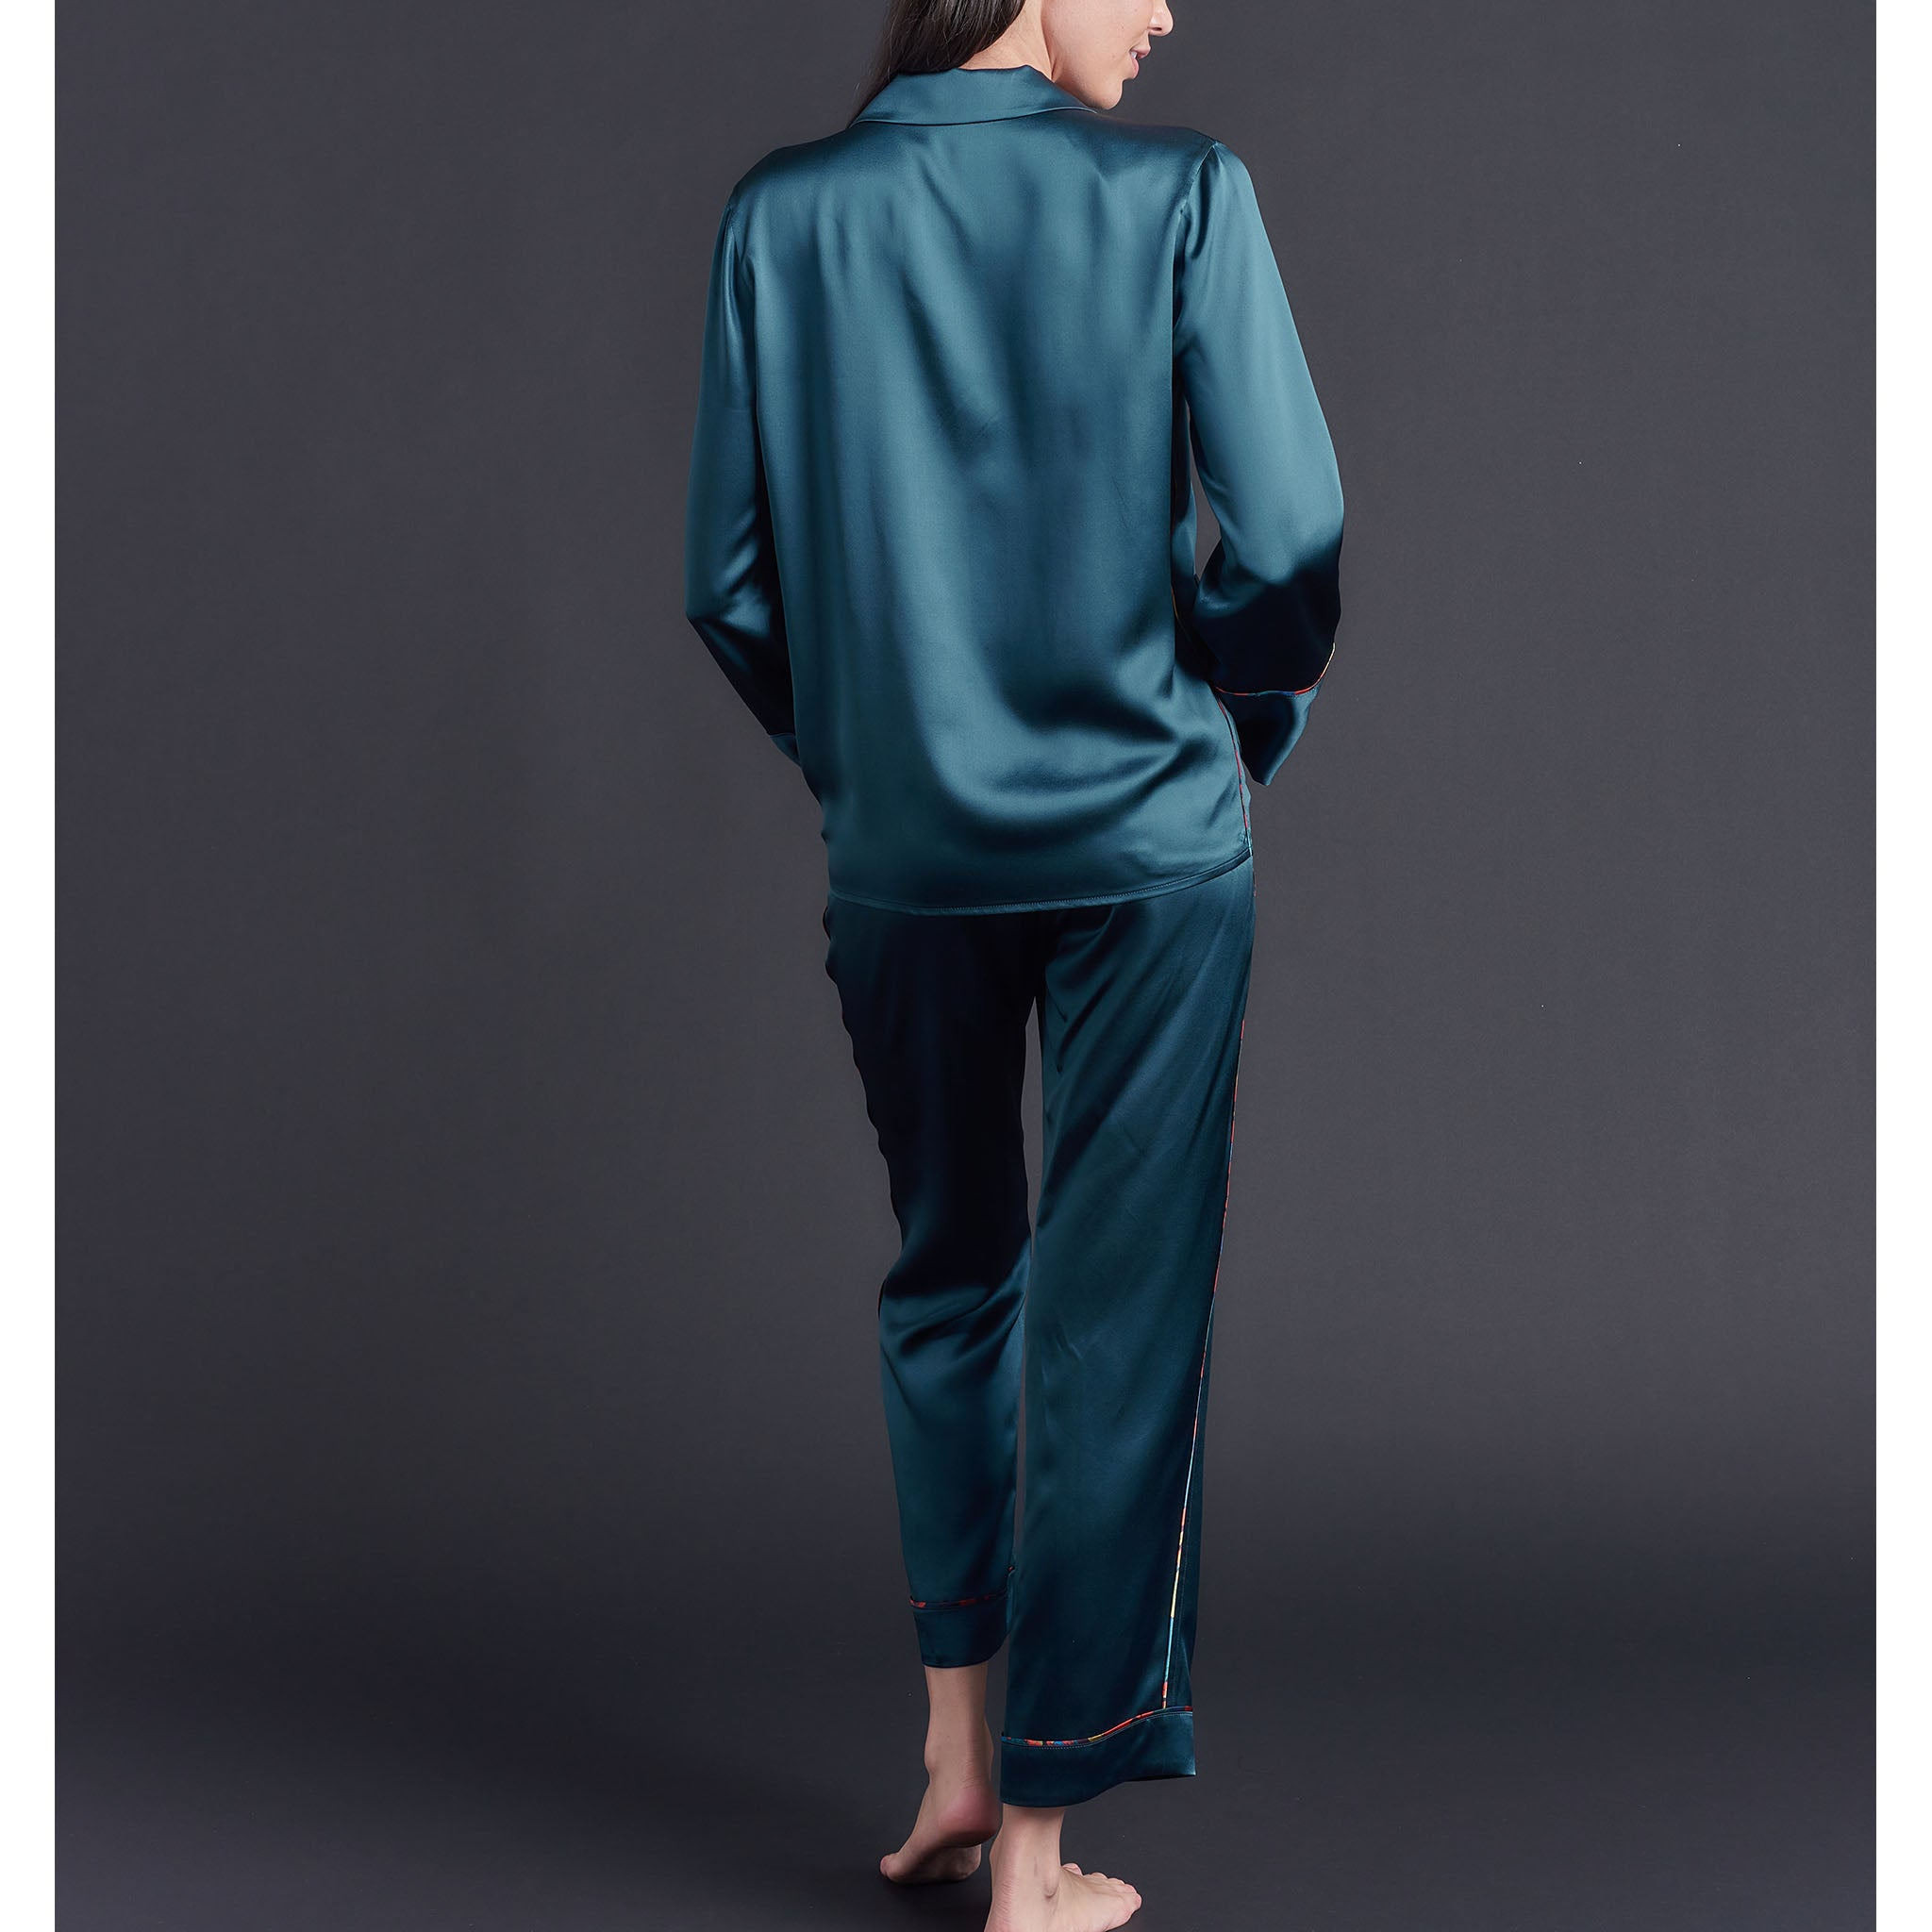 Annabel Pajama Top in Peacock Silk Charmeuse